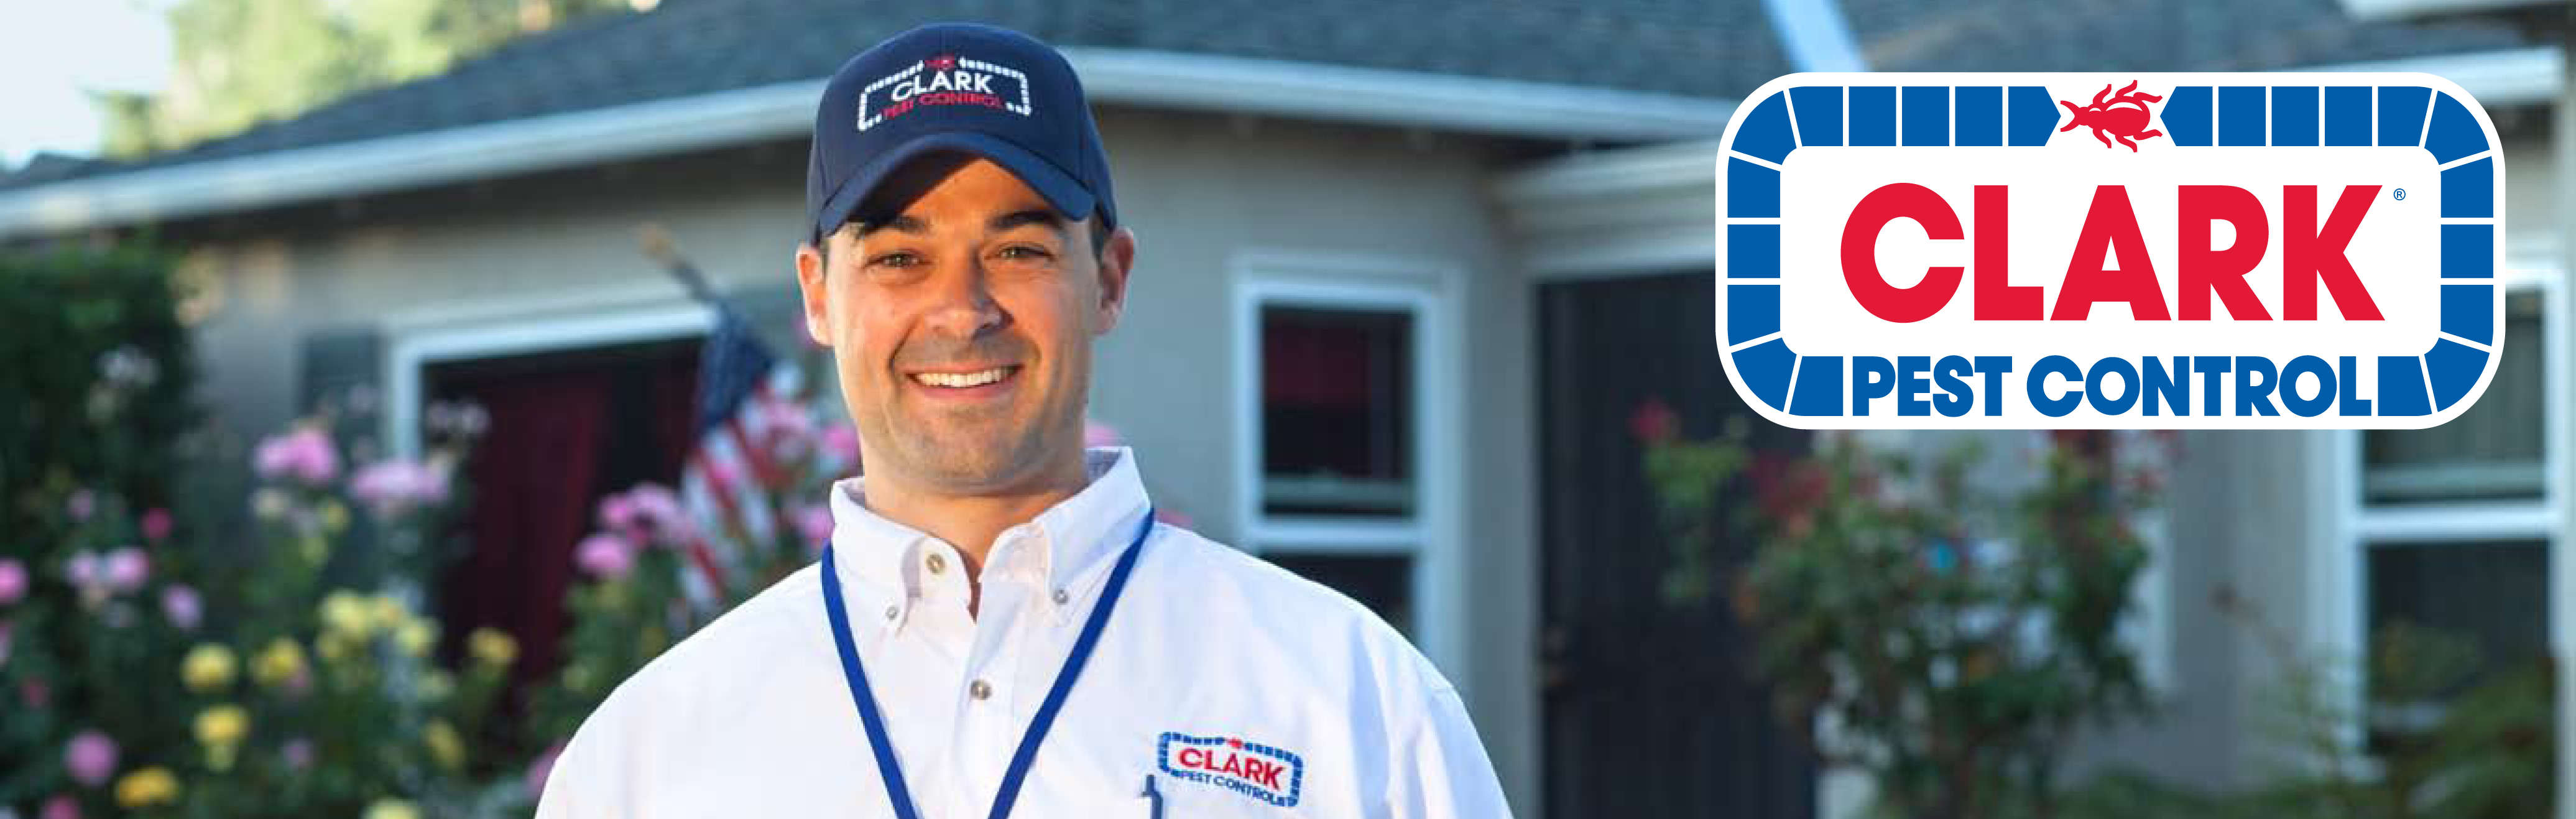 Clark Pest Control reviews | Home & Garden at 26822 Vista Terrace - Lake Forest CA